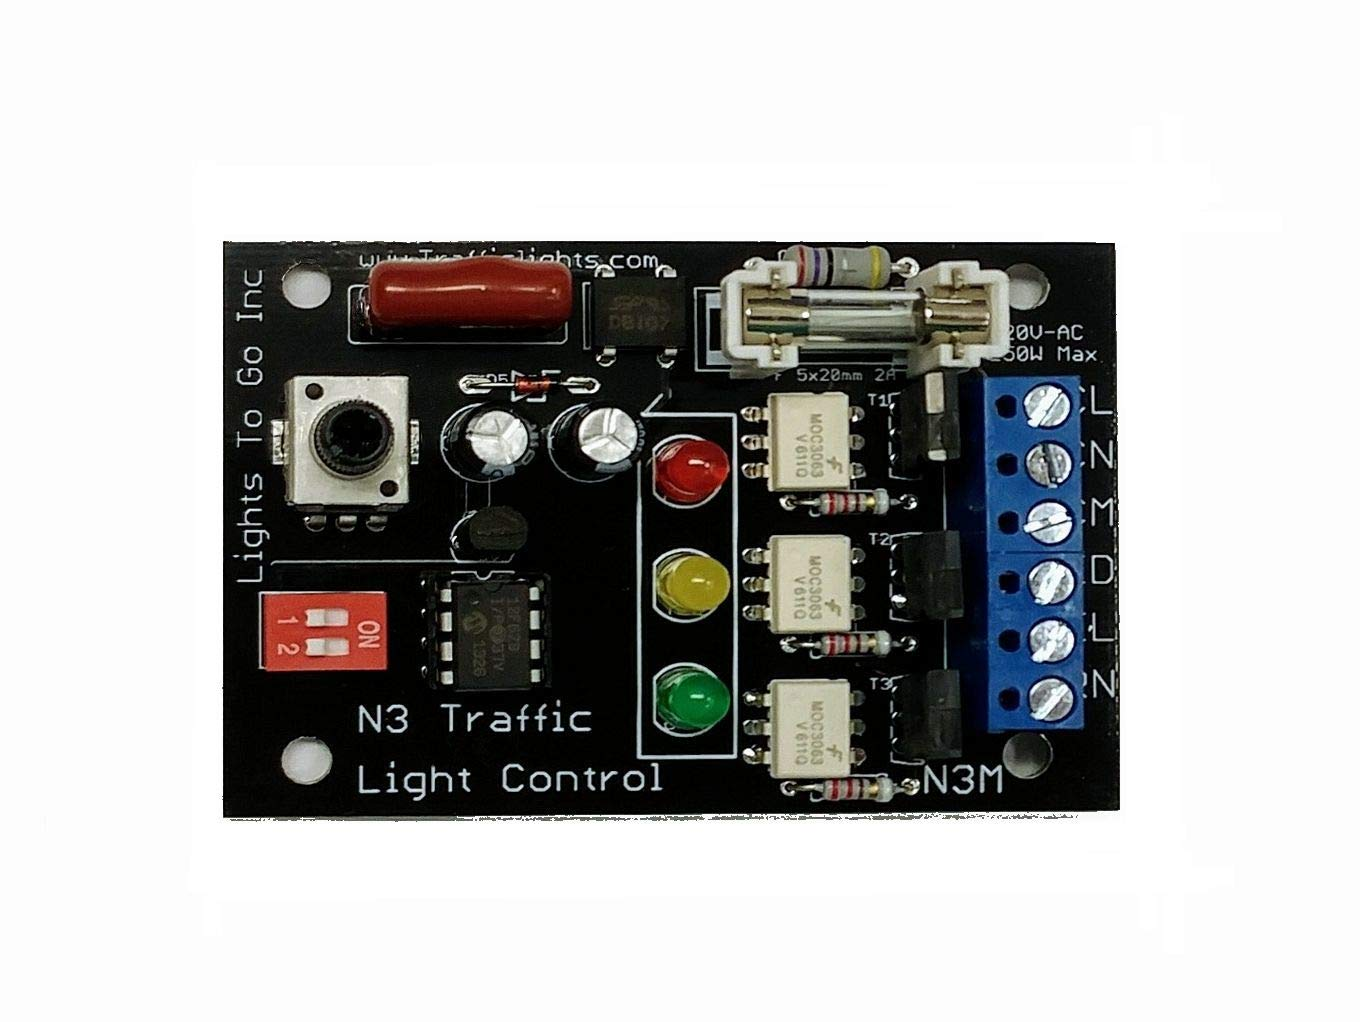 Ac Traffic Light Controller Digital Sequencer N3 3 Signal Sequential Timer Circuit Industrial Scientific